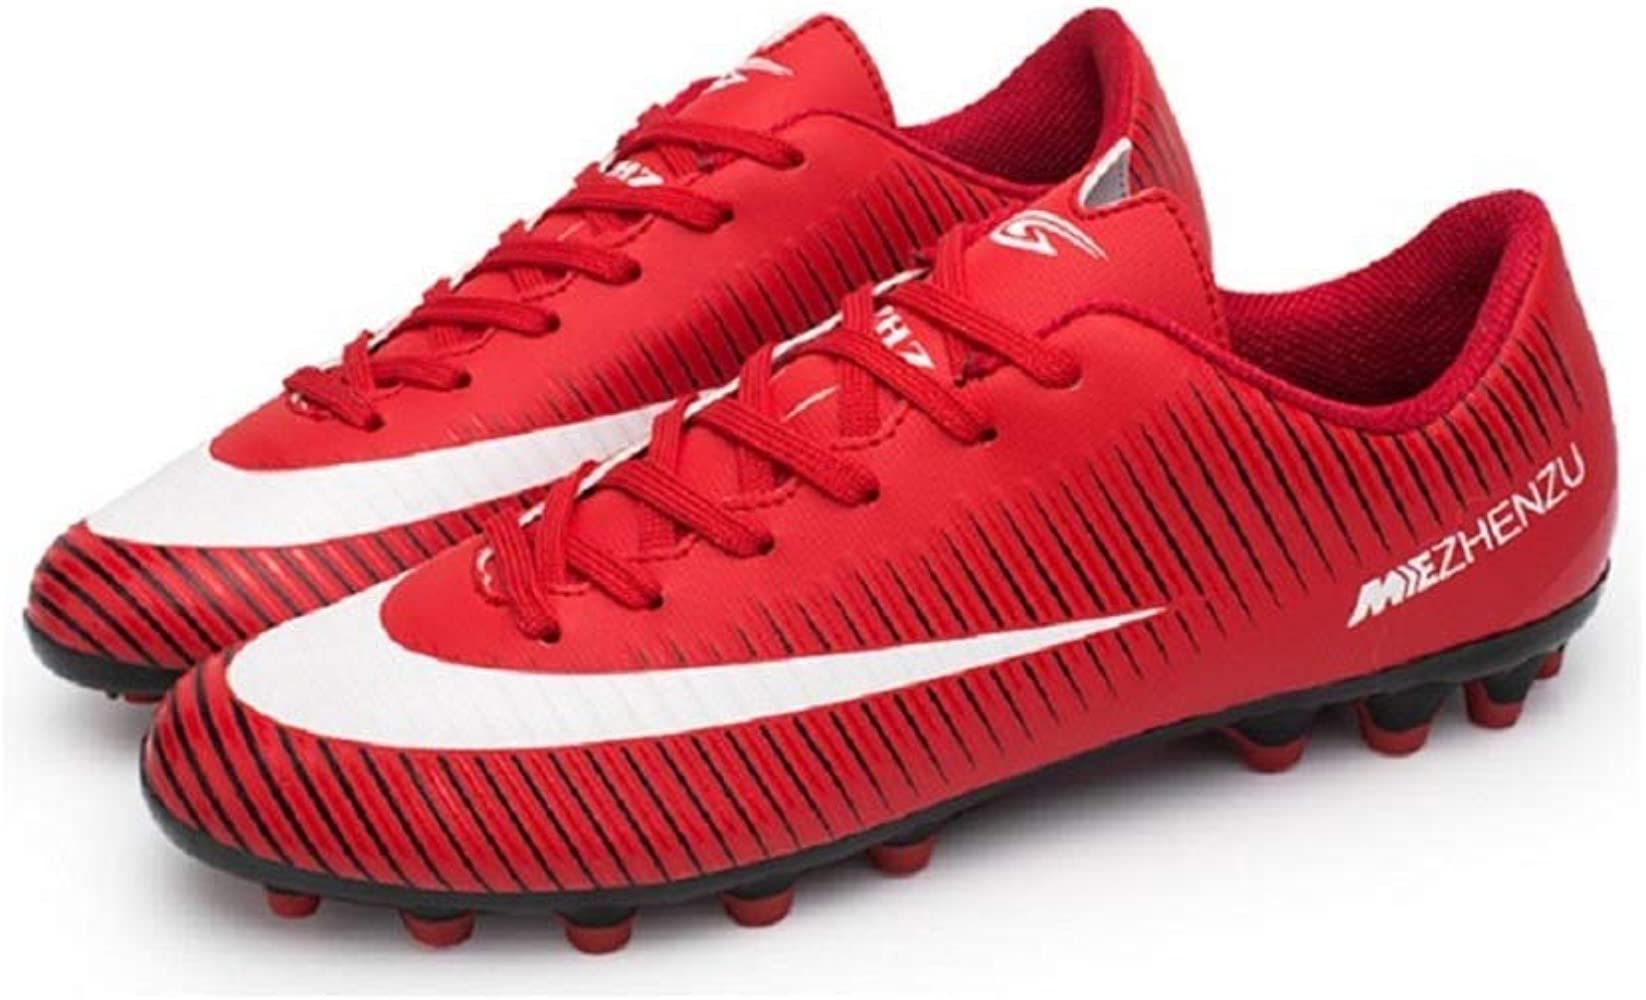 V-Do Breatheable Soccer Shoes Cleats